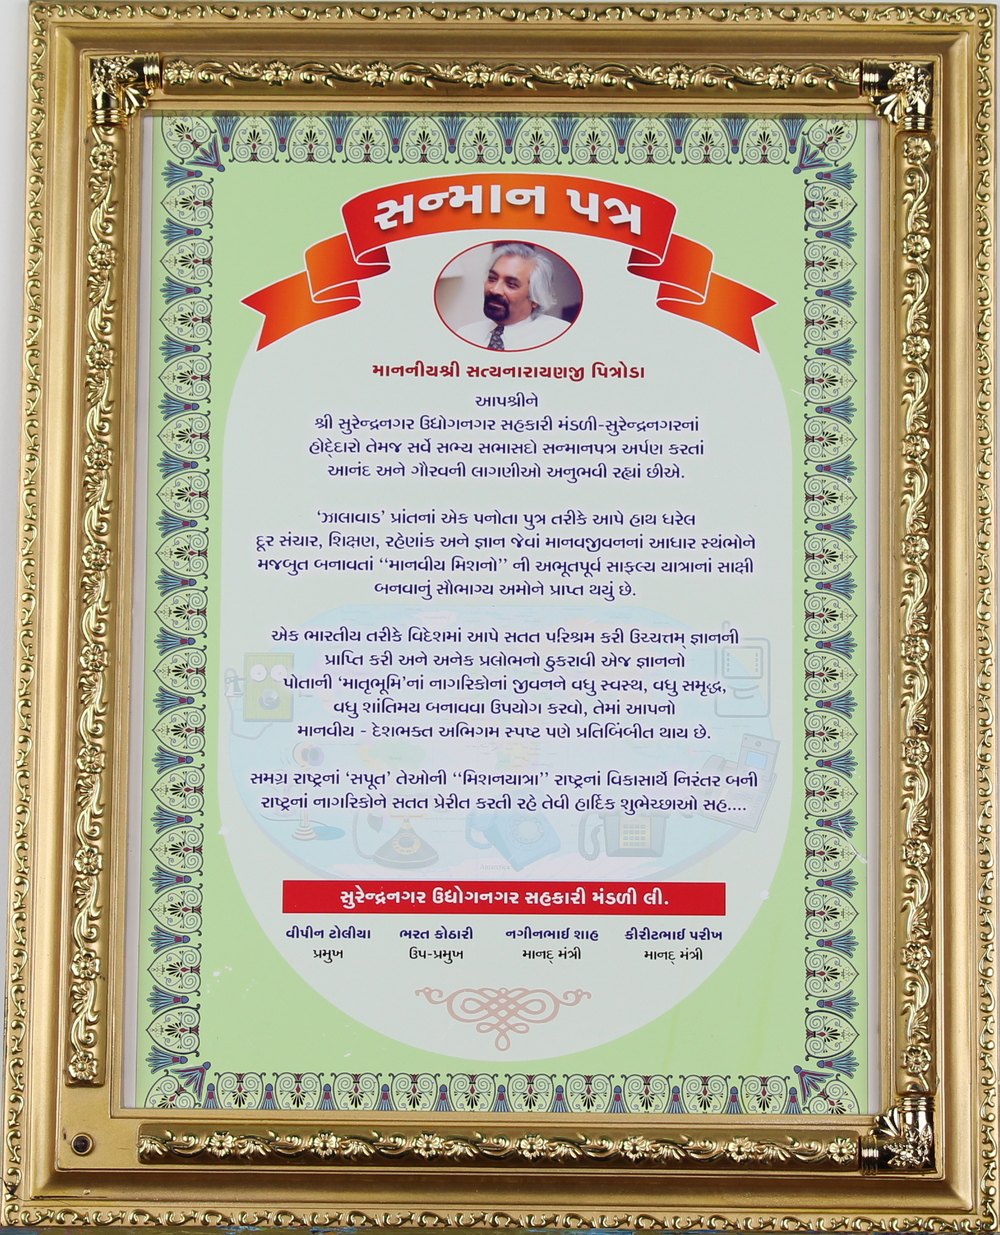 Award of Appreciation, Surendra Nagar Udyog Nagar Sahakari Mandli Limited